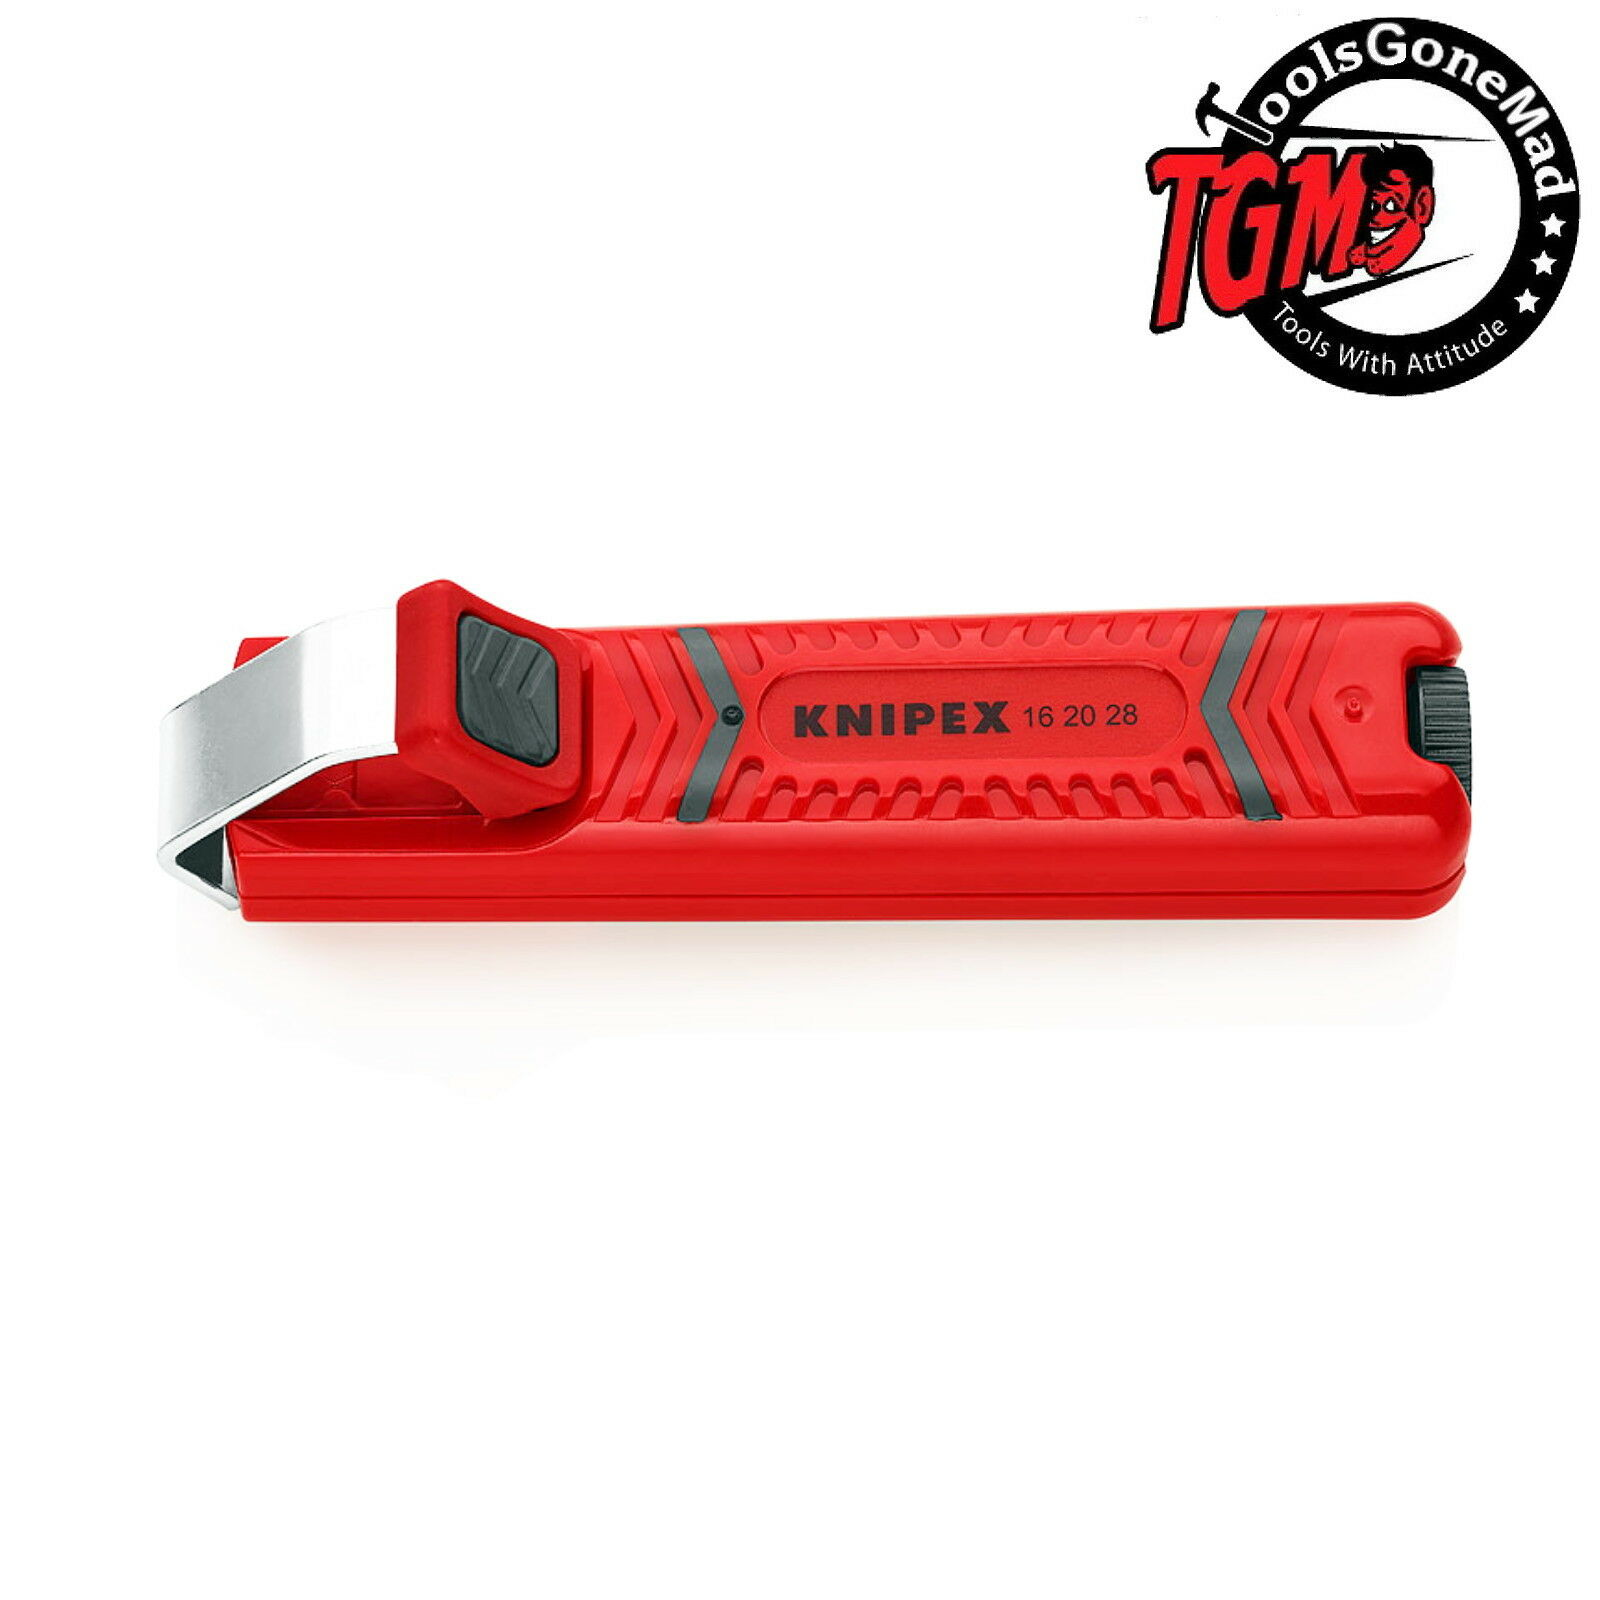 Knipex 16 60 05 SB Stripping Tool for coax cables in blister packaging